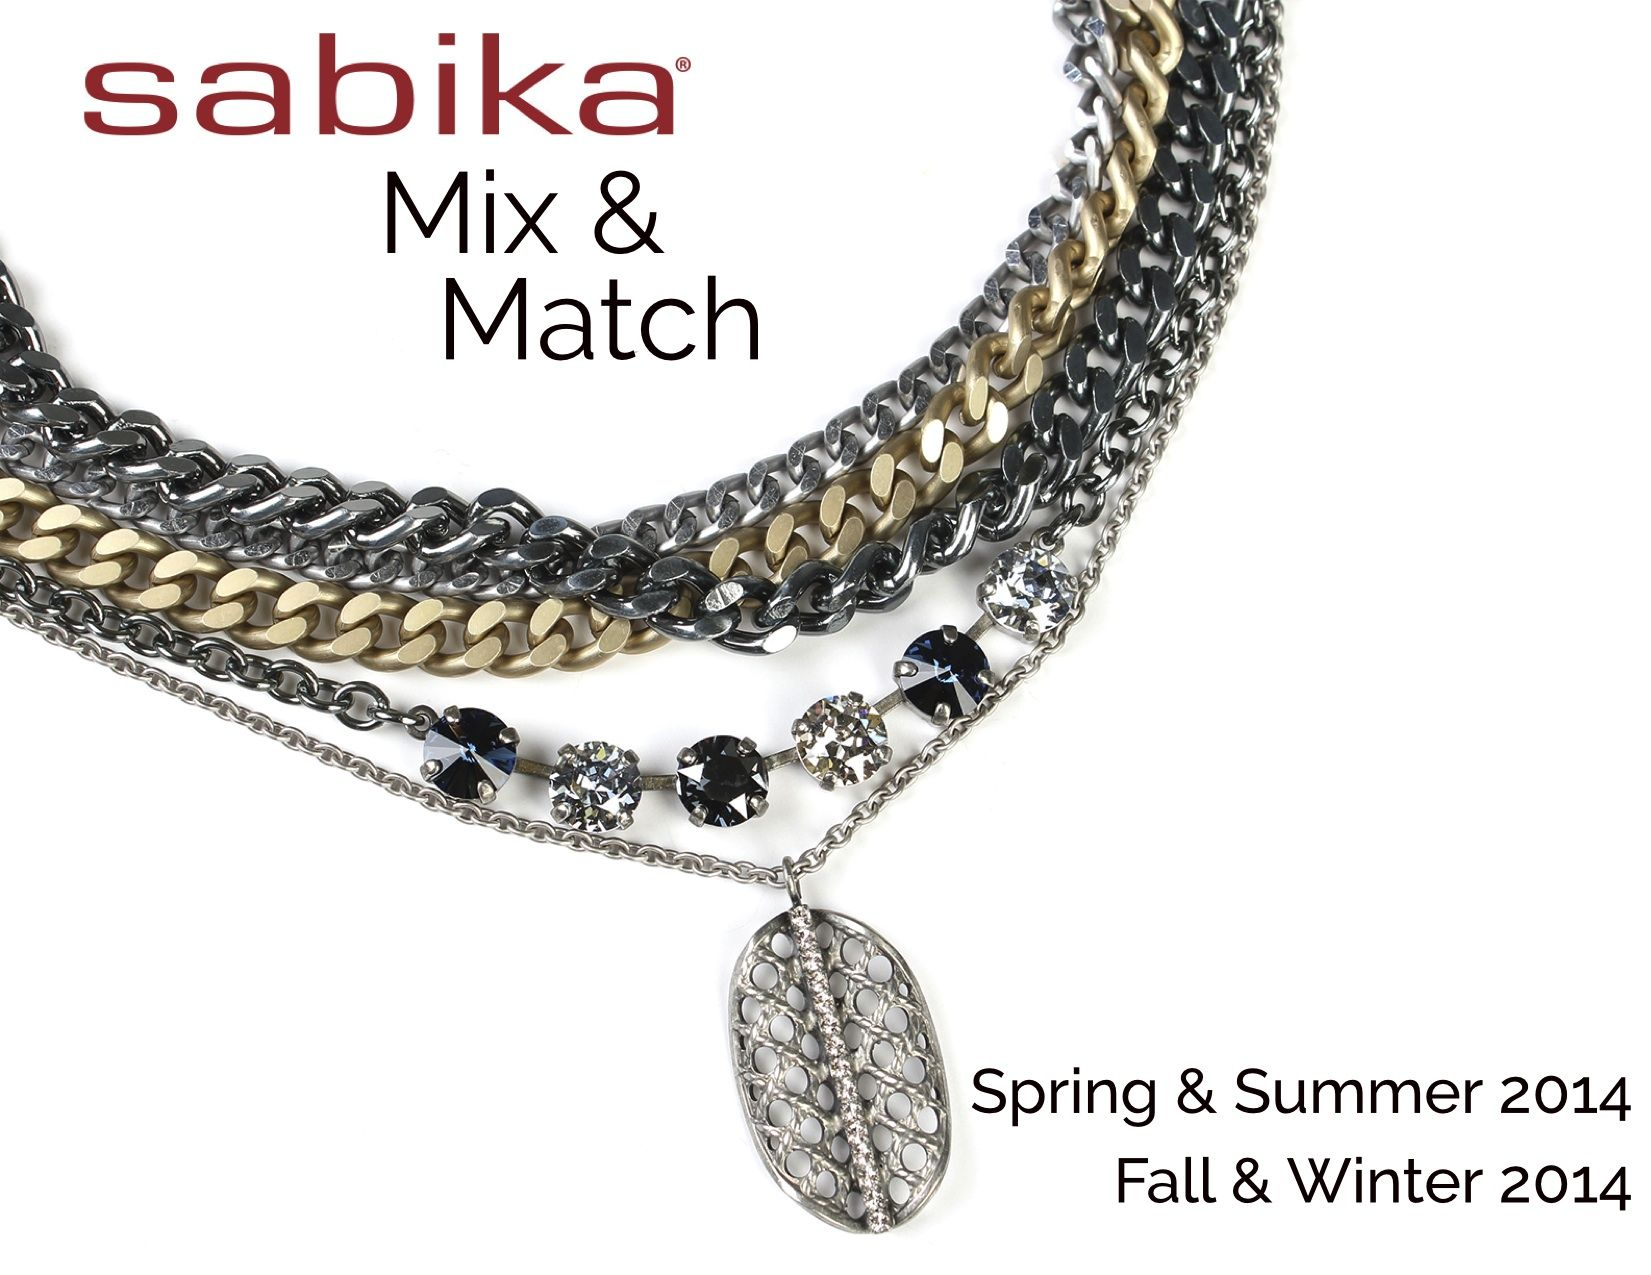 Sabika look necklace - Soft Hues For A Statement Look Impact 3 Row Choker Edition Country Star